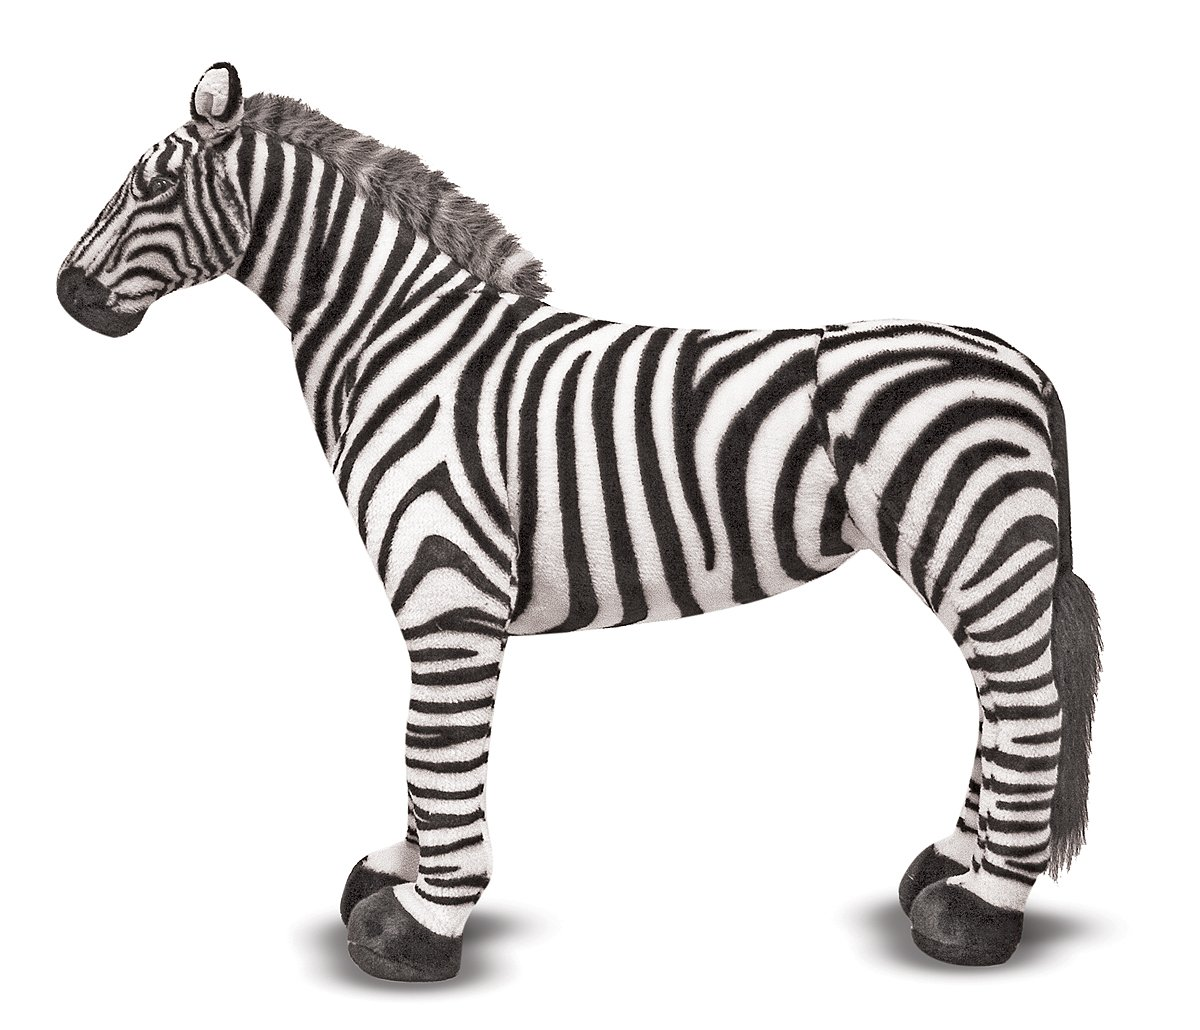 Melissa & Doug Giant Striped Zebra - Lifelike Stuffed Animal (nearly 3 feet tall) by Melissa & Doug